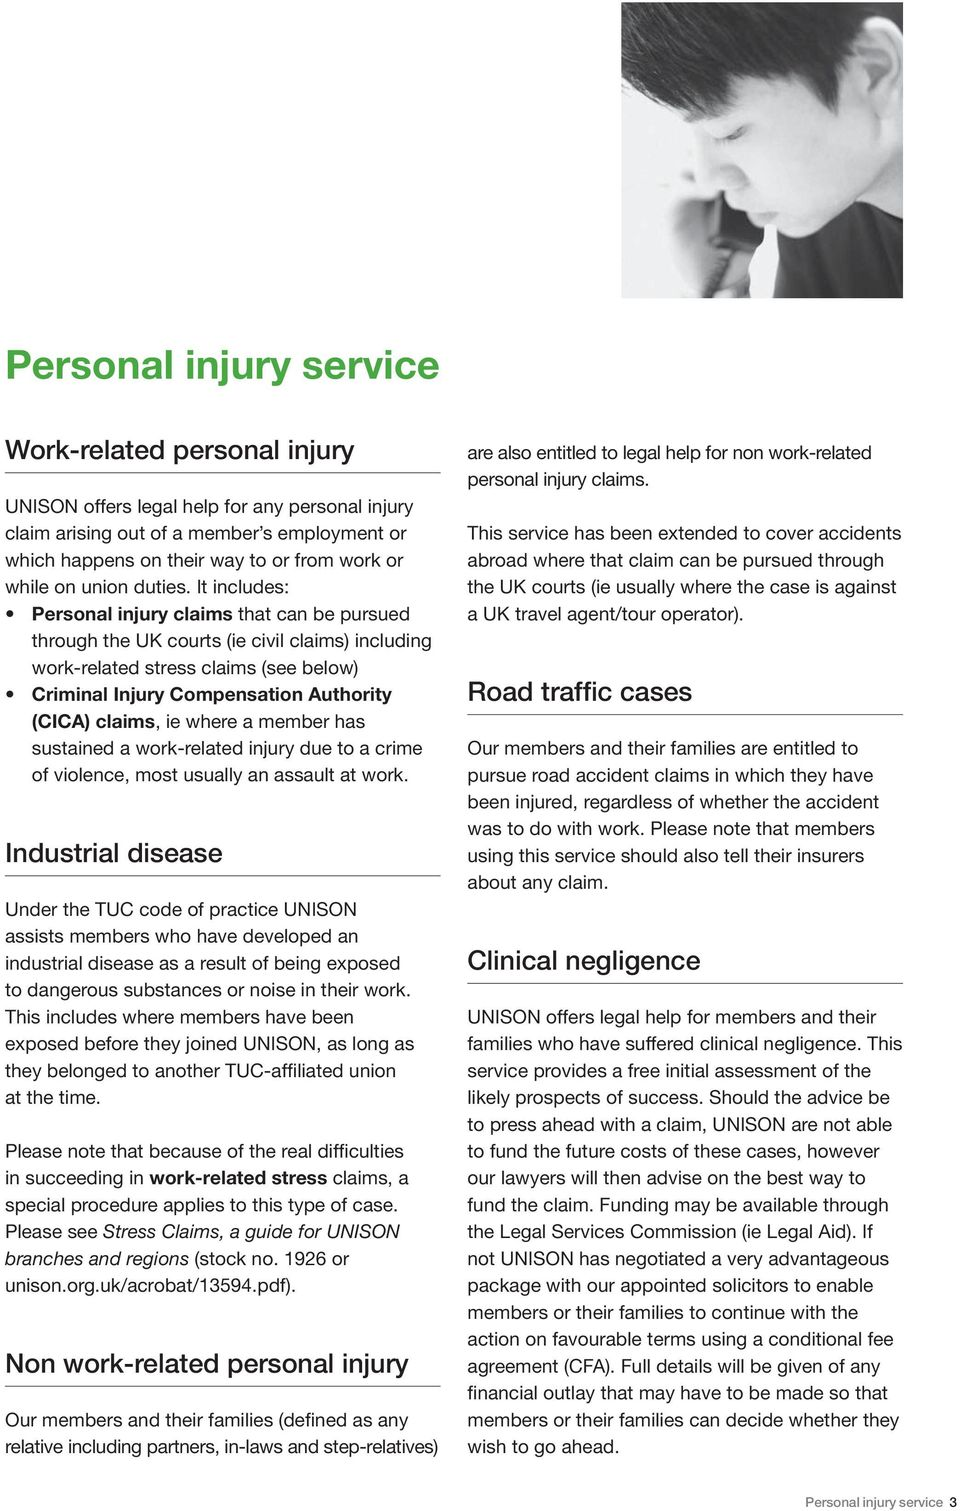 It includes: Personal injury claims that can be pursued through the UK courts (ie civil claims) including work-related stress claims (see below) Criminal Injury Compensation Authority (CICA) claims,